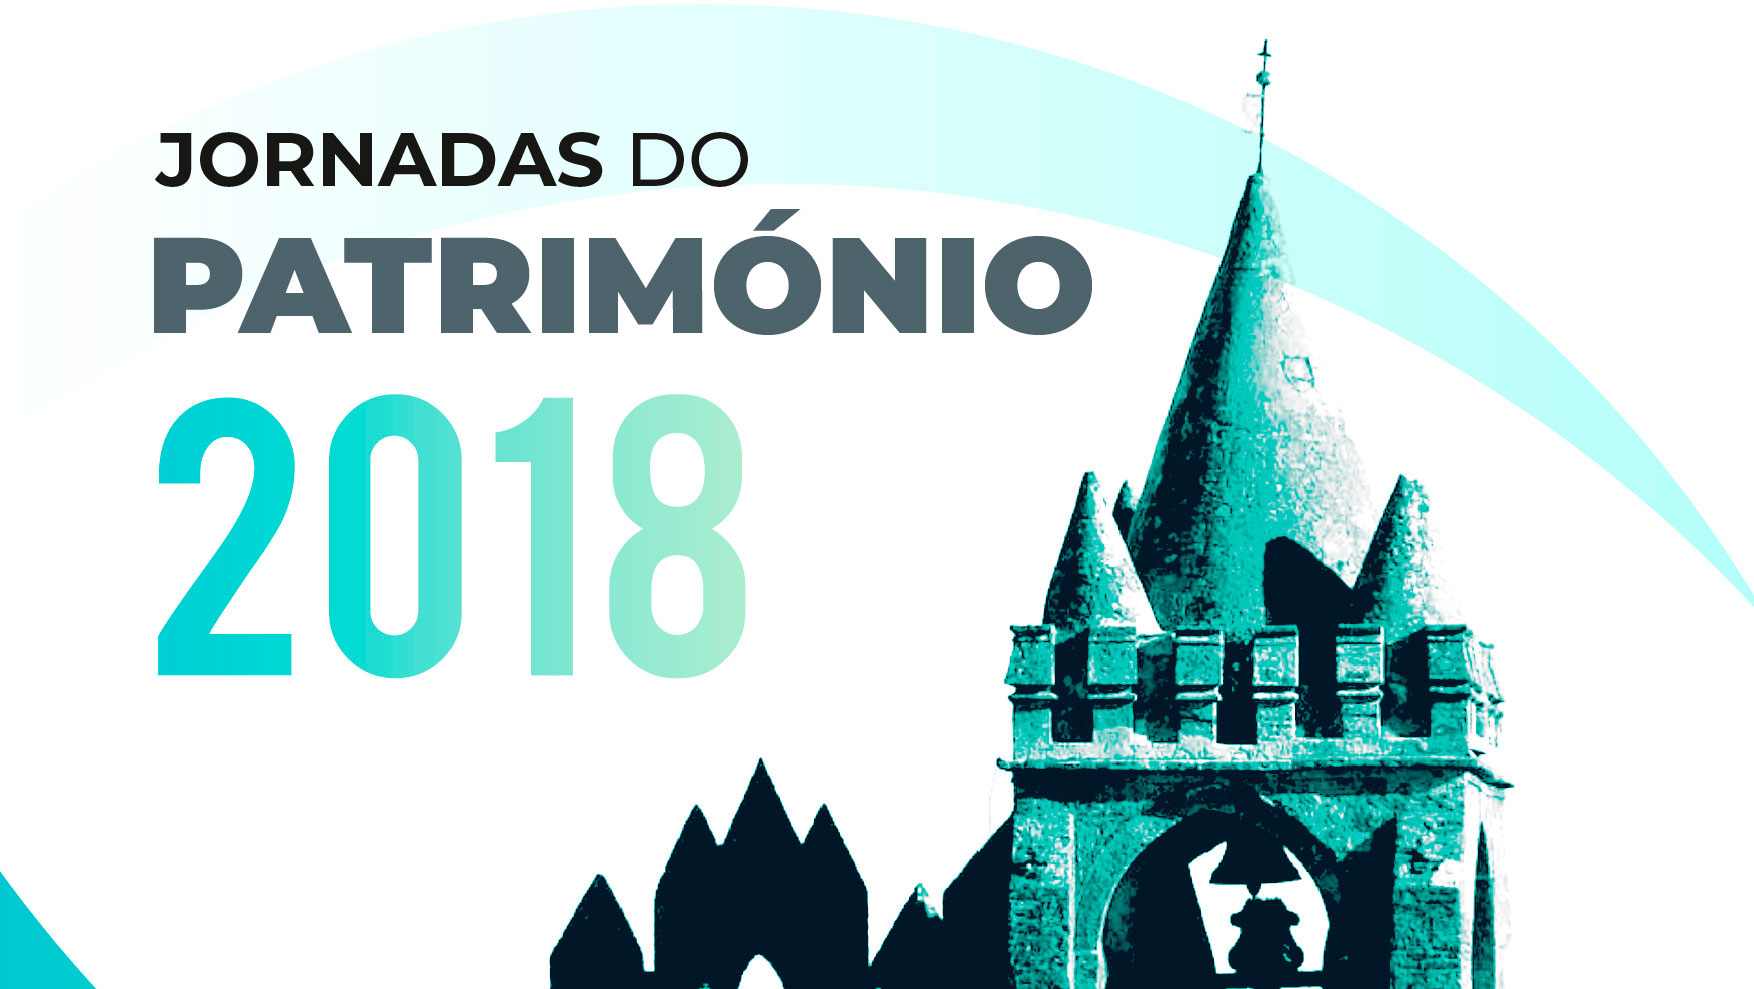 Jornadas do Património 2018